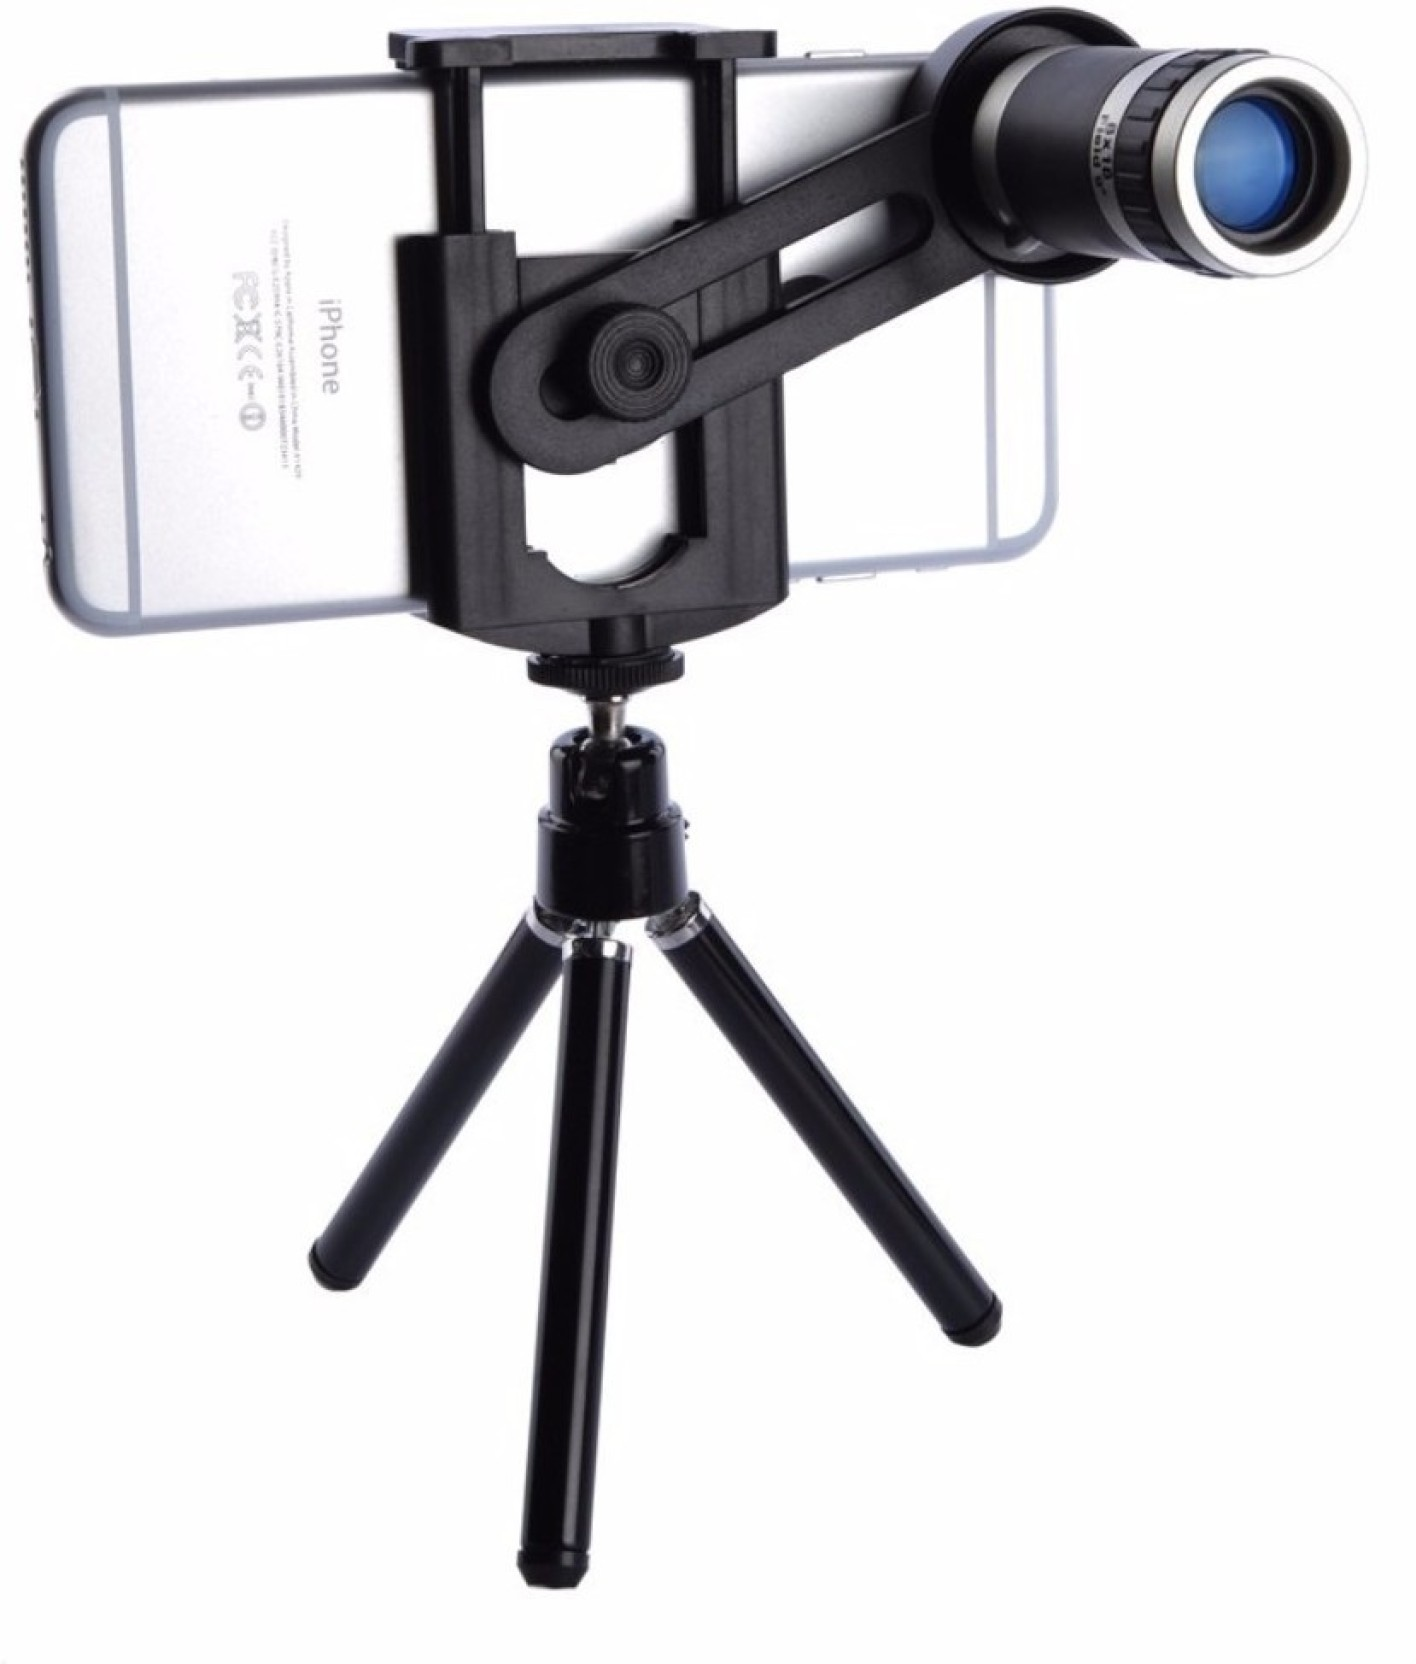 new product 133d2 221ff Easypro ™ Xiaomi Mi A1 Compatible Universal 8X Zoomer Optical Zoom  Telescope Mobile Camera Lens Kit with Tripod and Adjustable Holder(Limited  Stock) ...